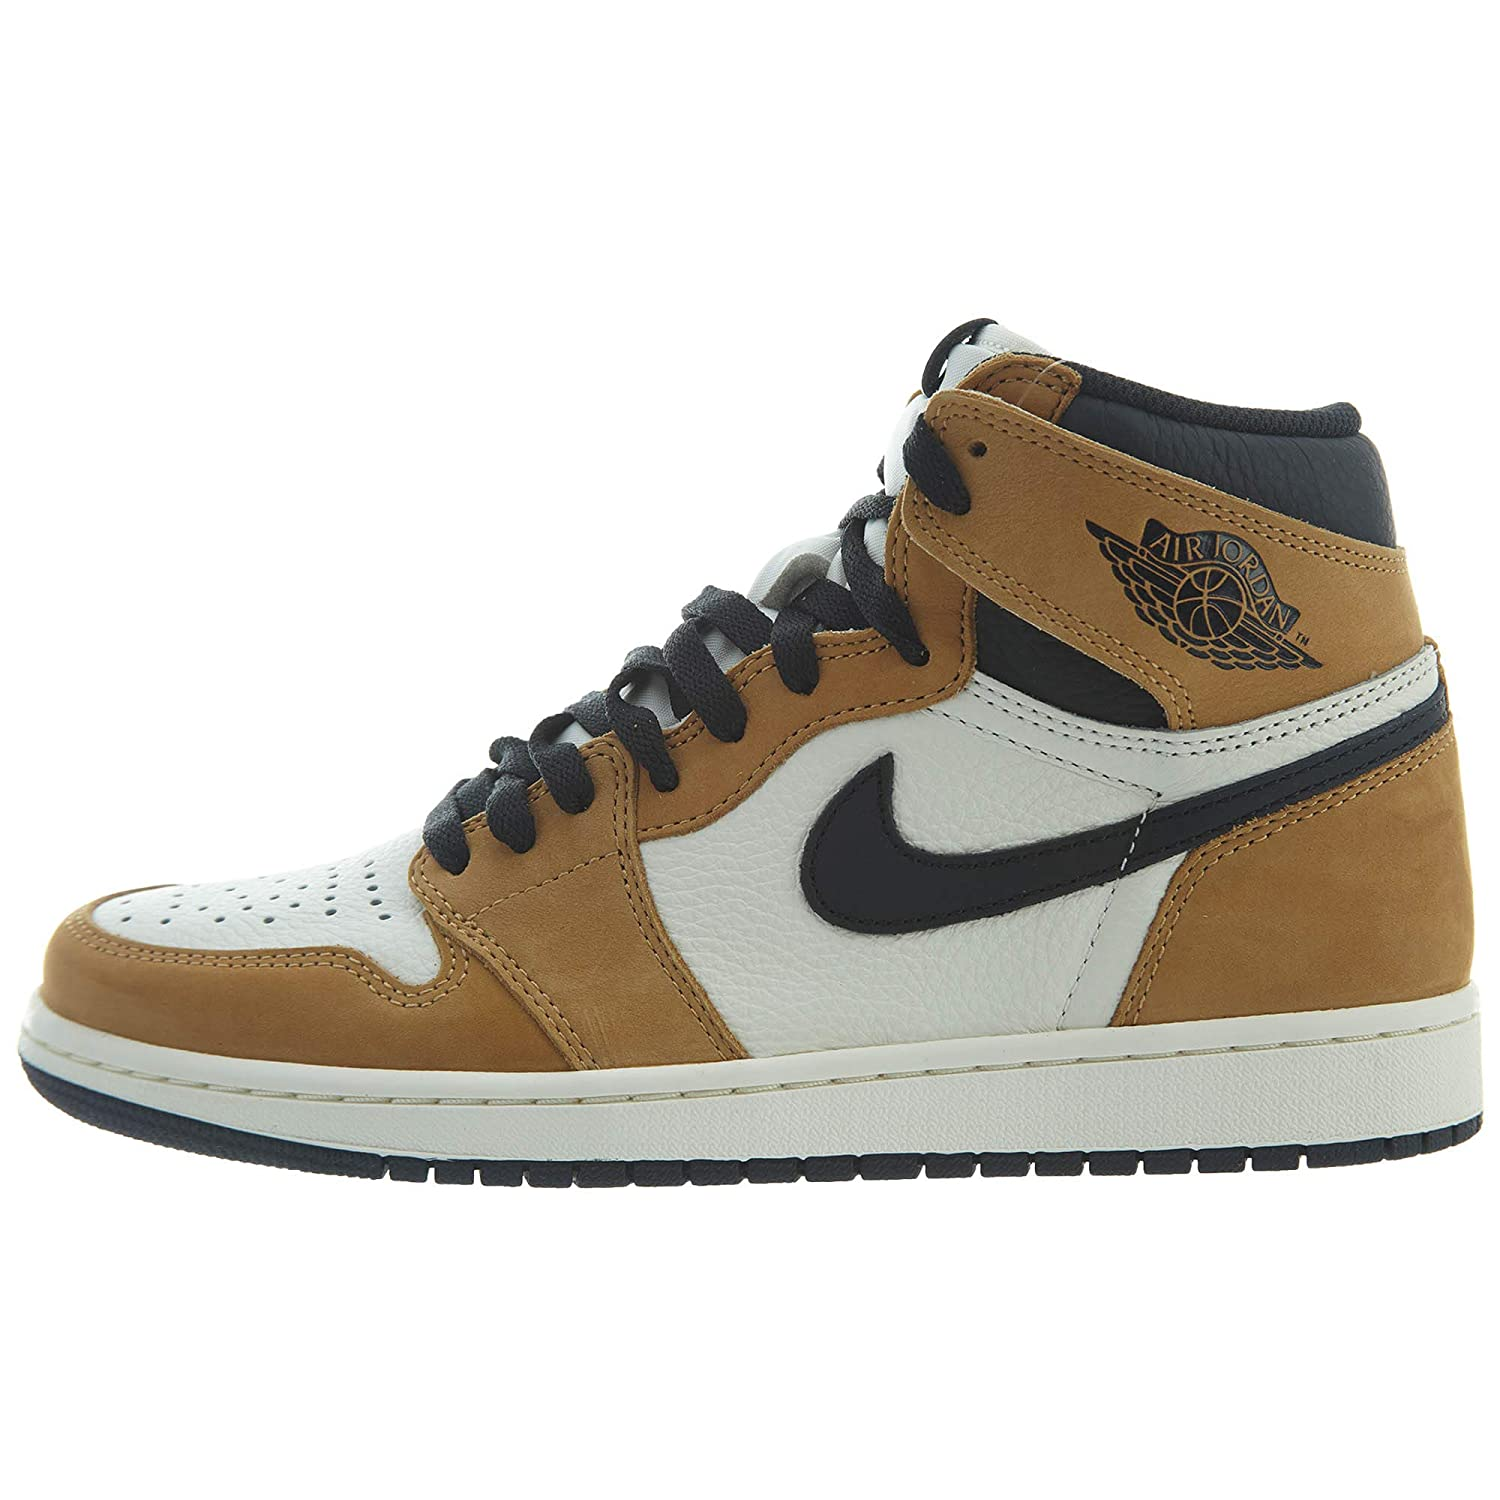 9177d4d6822 Amazon.com | Jordan 1 Retro High Og Rookie of The Year Mens | Fashion  Sneakers